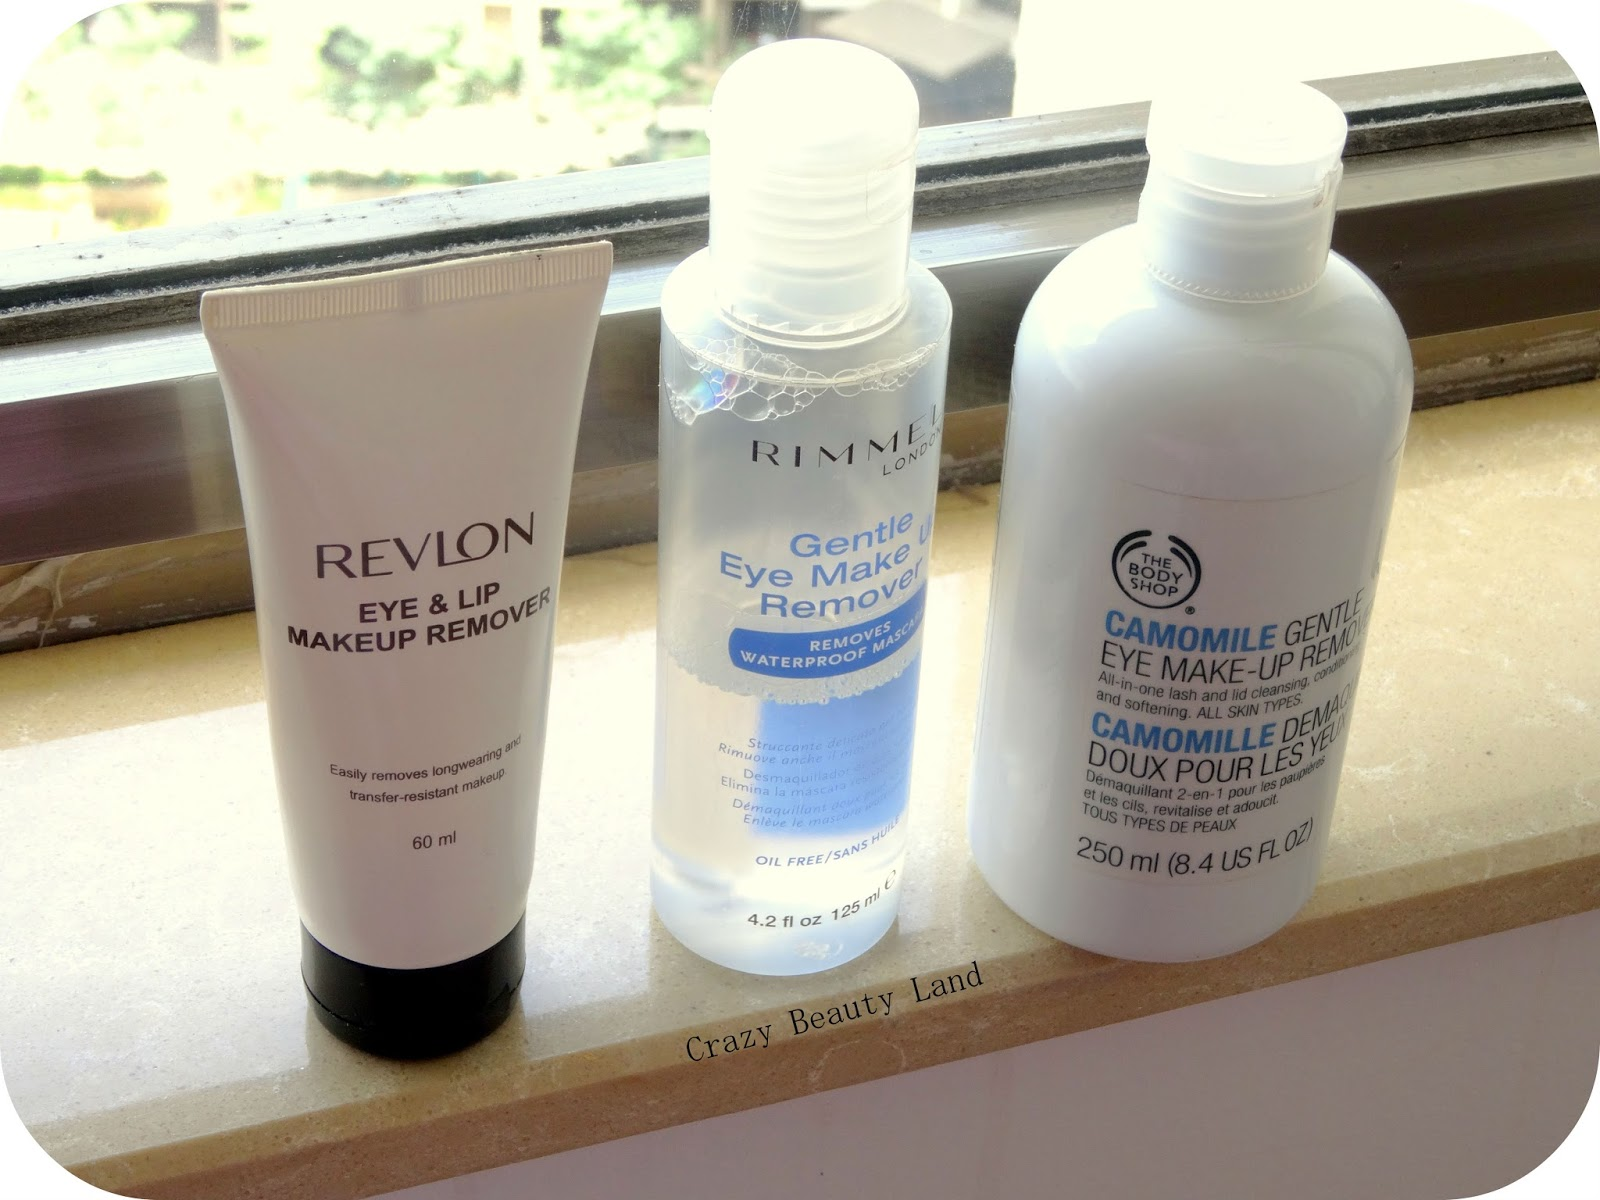 Revlon Eye and Lip Makeup Remover Review, Rimmel Gentle Eye Make Up Remover Oil Free Review, The Body Shop Camomile Gentle Eye Makeup Remover Review